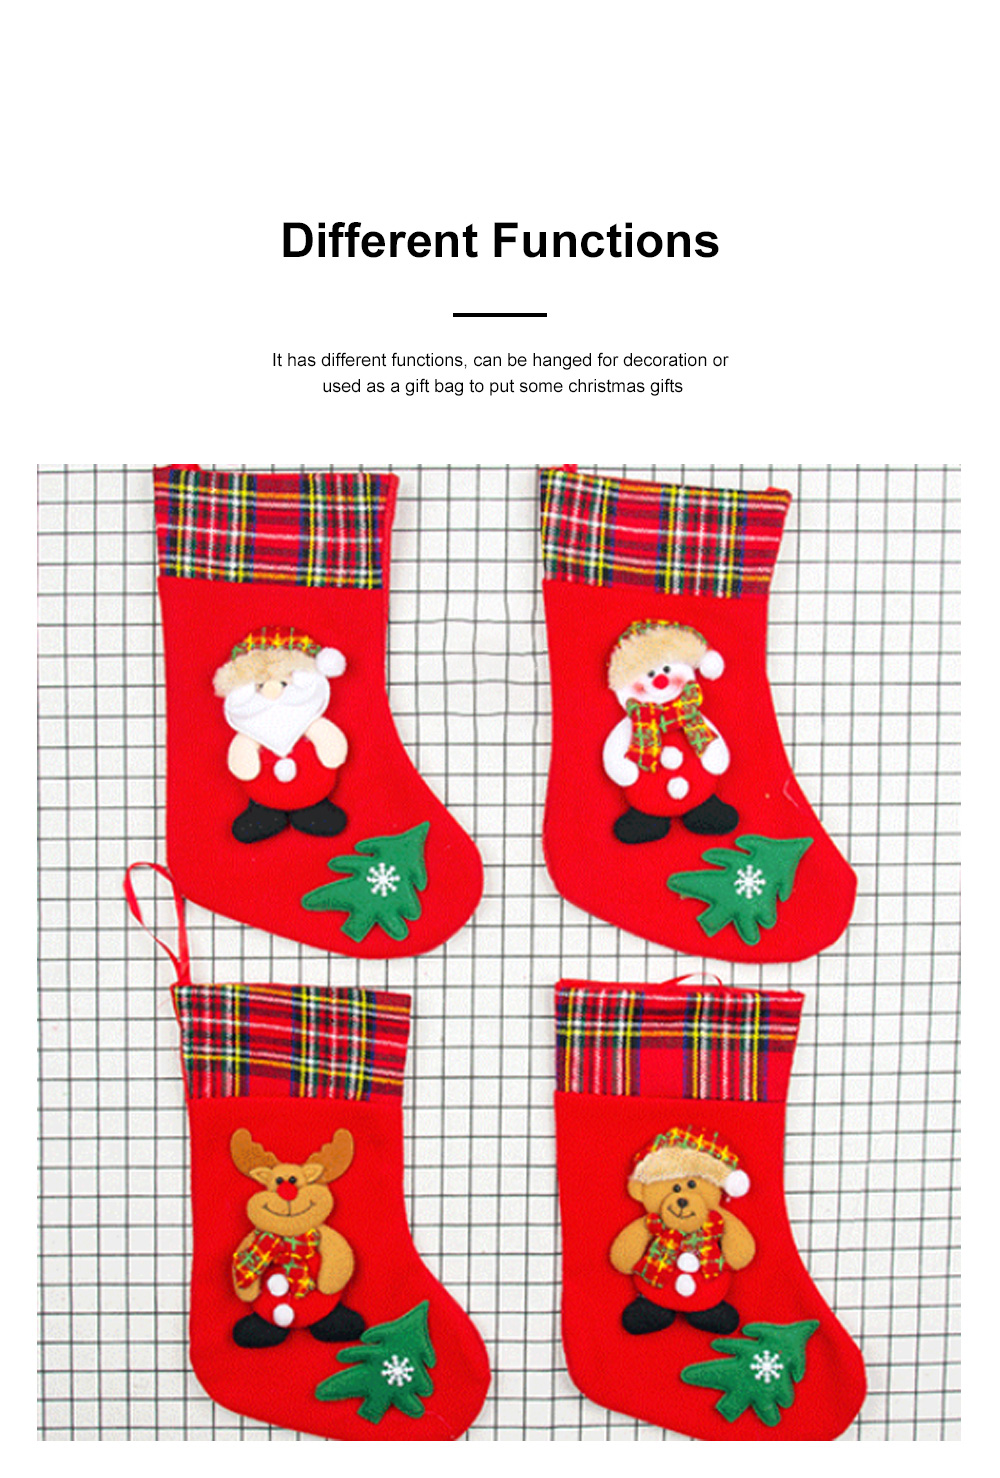 Top Selling Design Stocking Christmas Decorations Fabric Plaid Santa Claus Christmas Socks Gift Bag 2